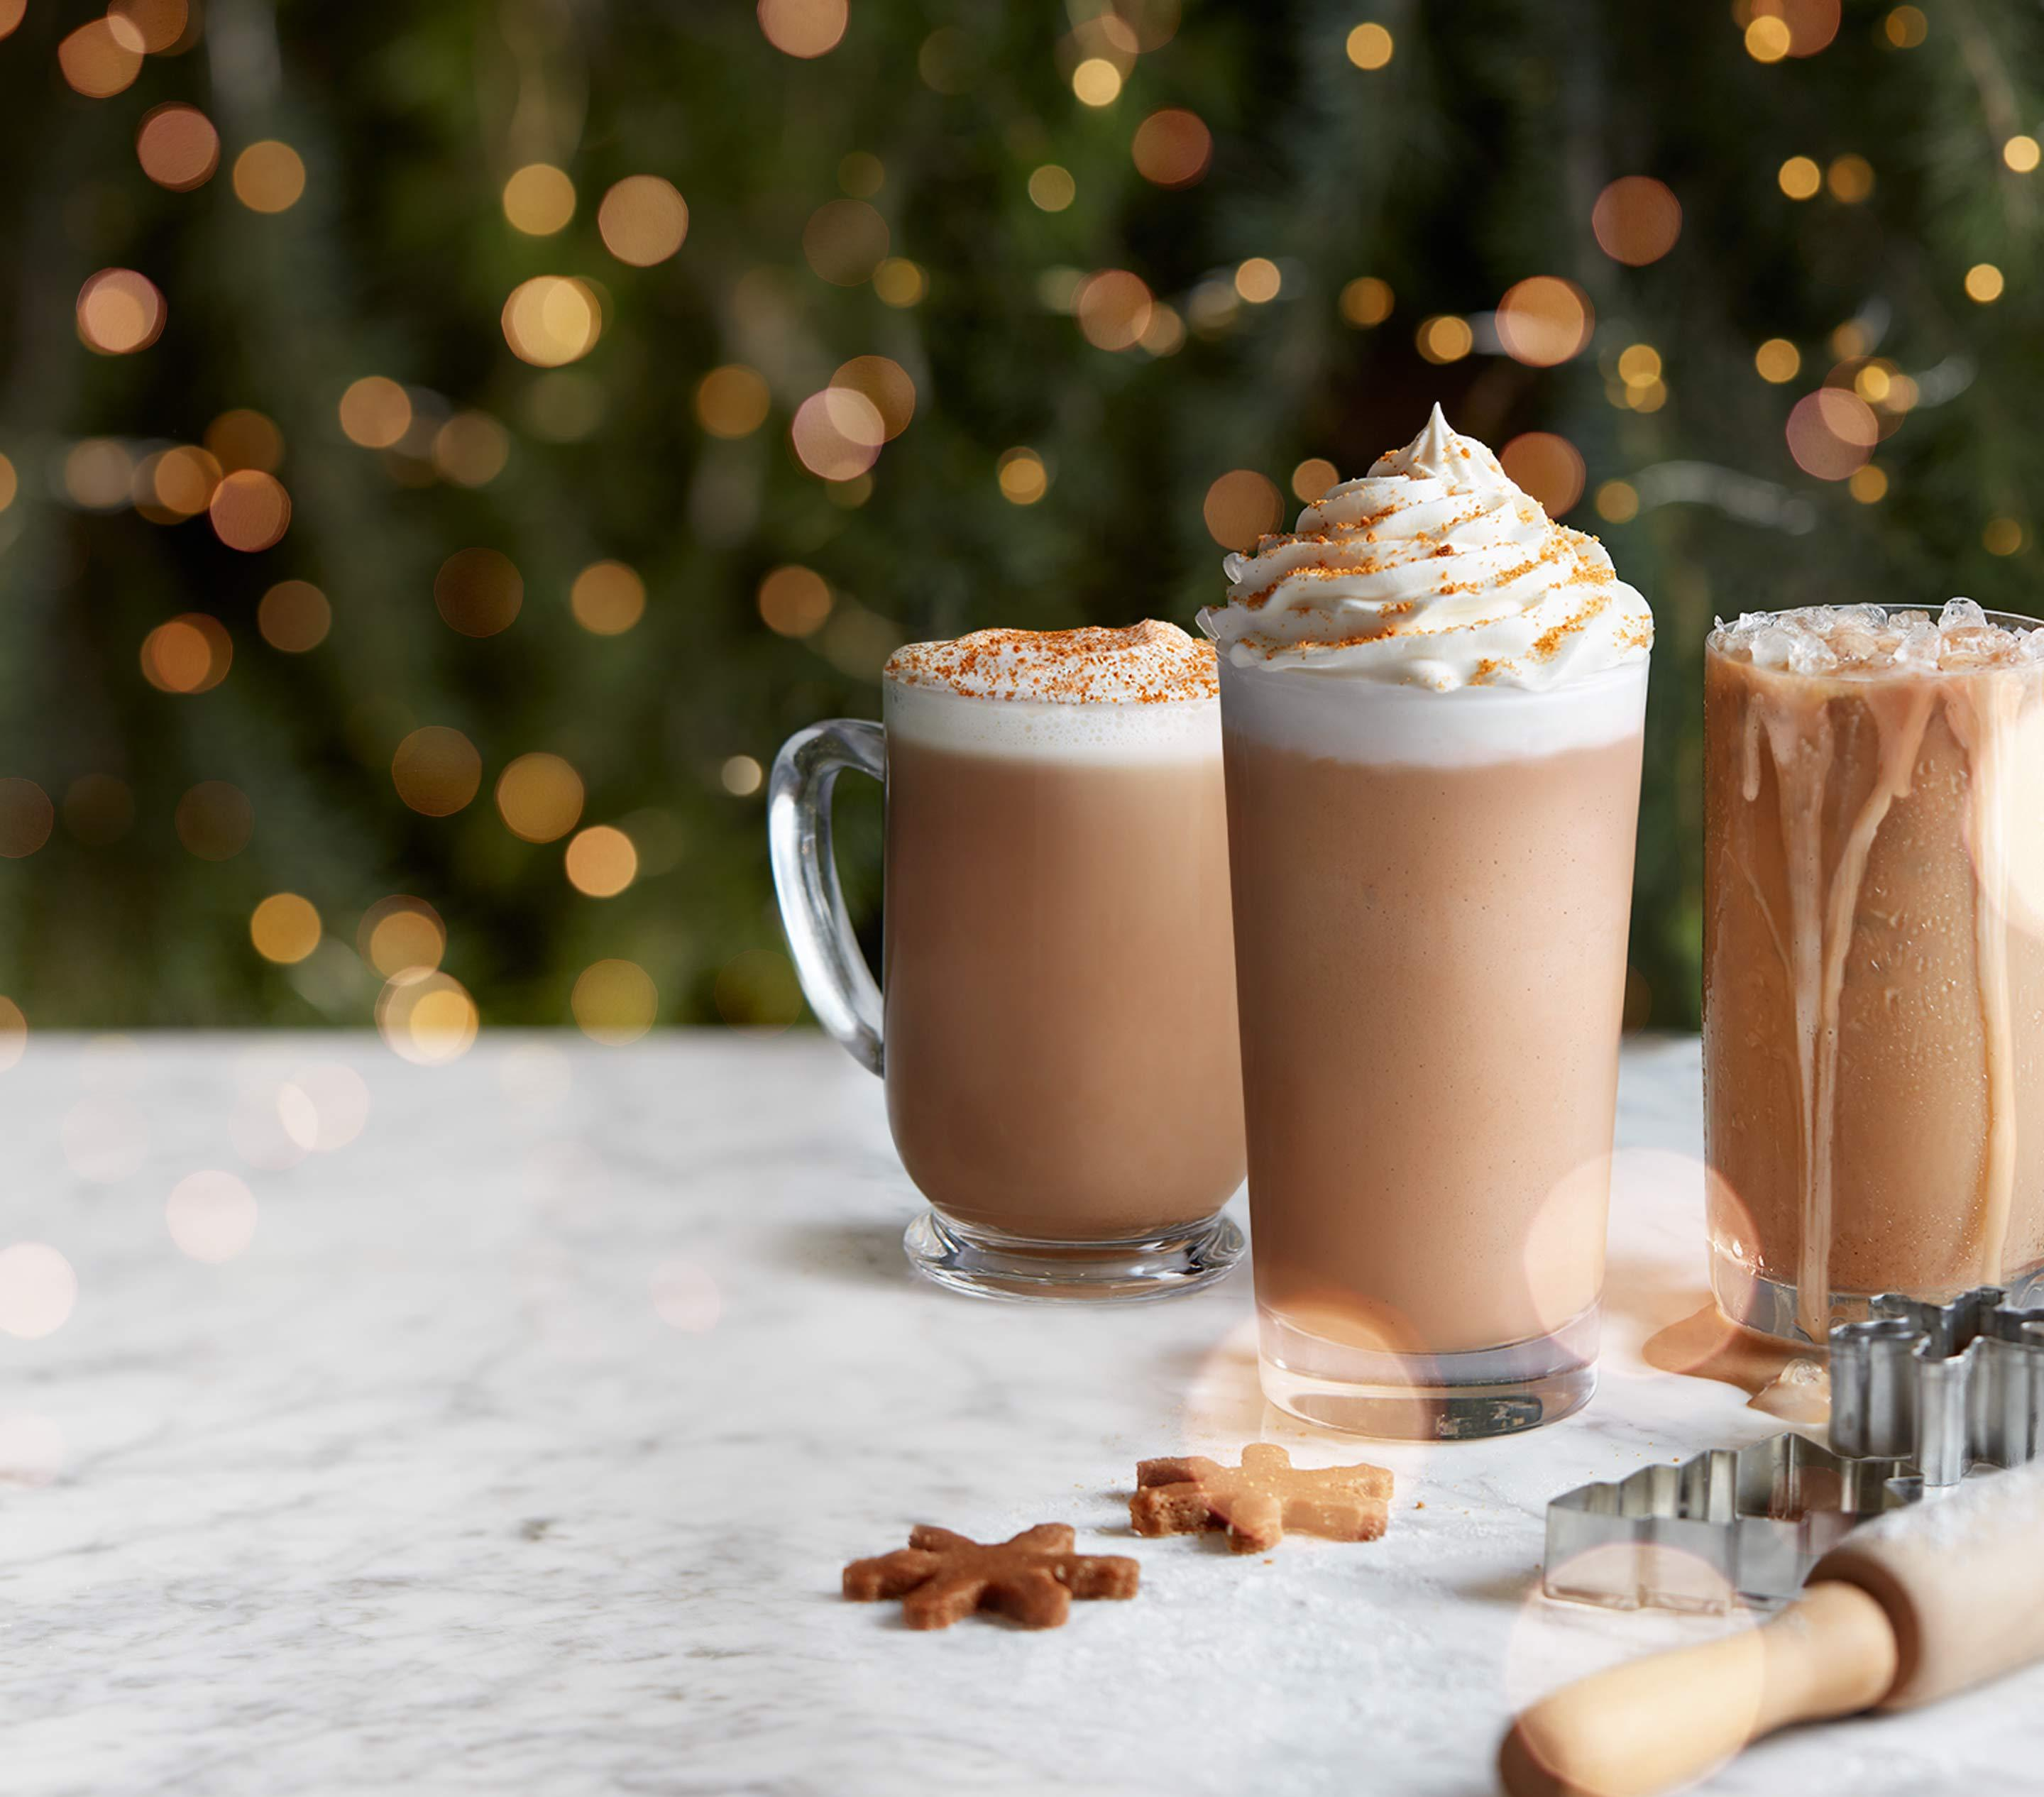 Cookie Butter Latte Iced Latte Ice Blended Drink The Coffee Bean Tea Leaf